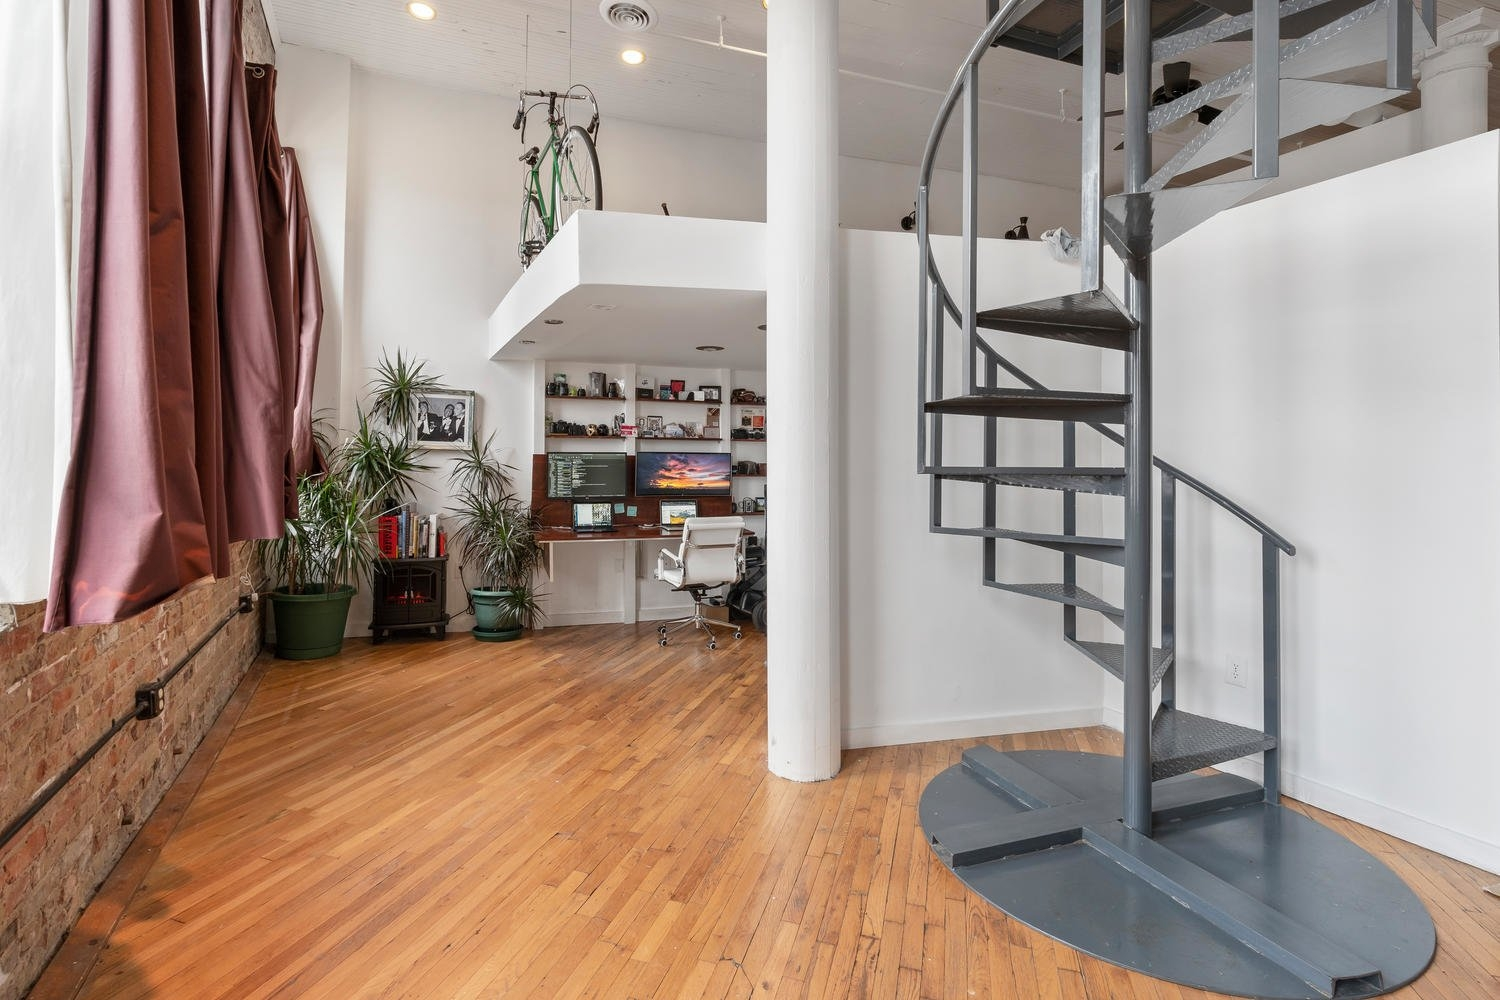 Photo 6 Of 13 In A Hip Atlanta Loft With A Rooftop Deck Asks 300K   Loft With Spiral Staircase   Small   Contemporary   Addition   Timber   New